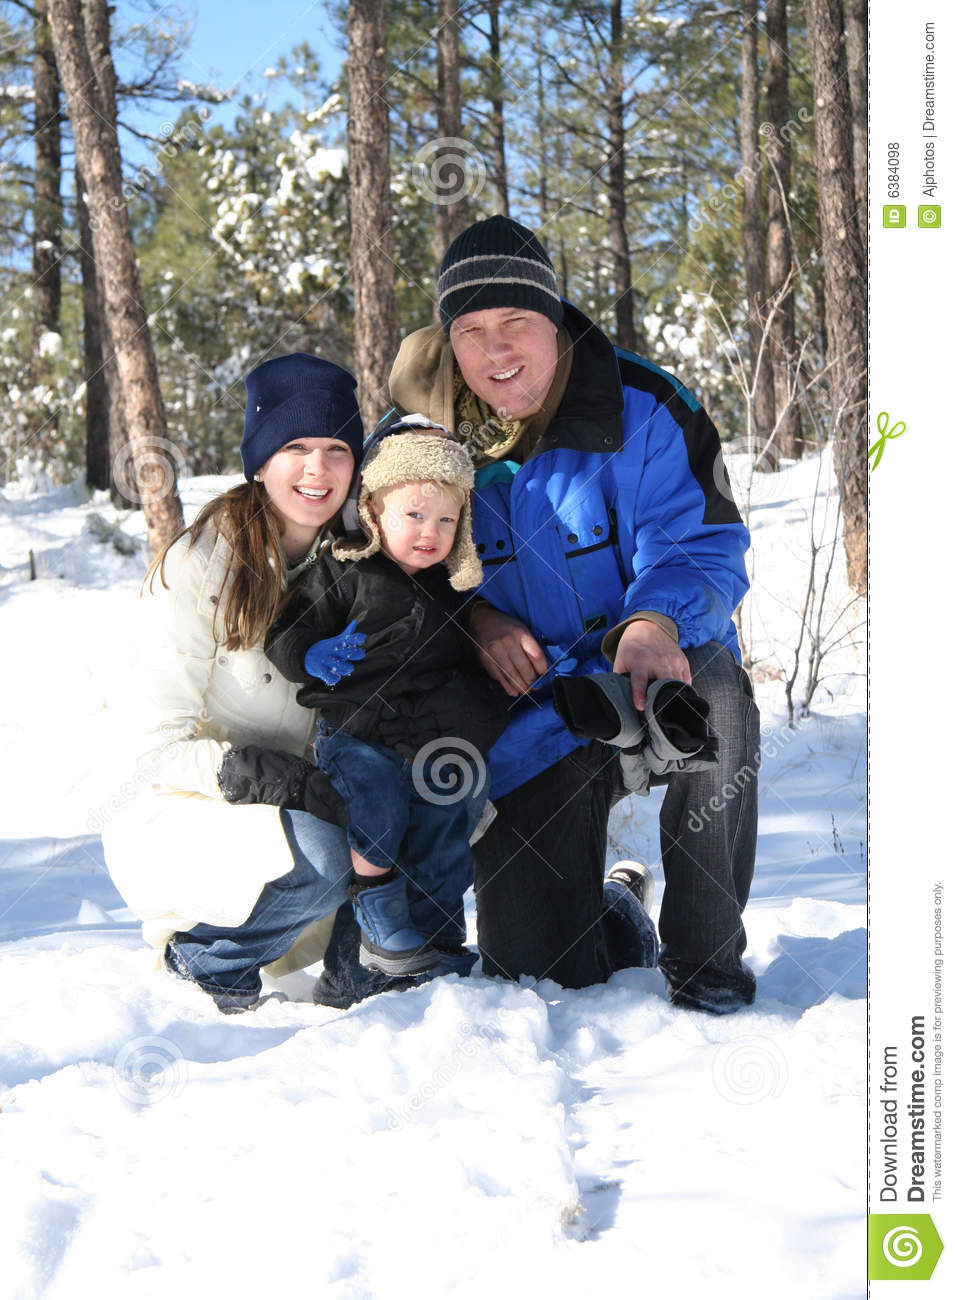 Family on a Winter Holiday